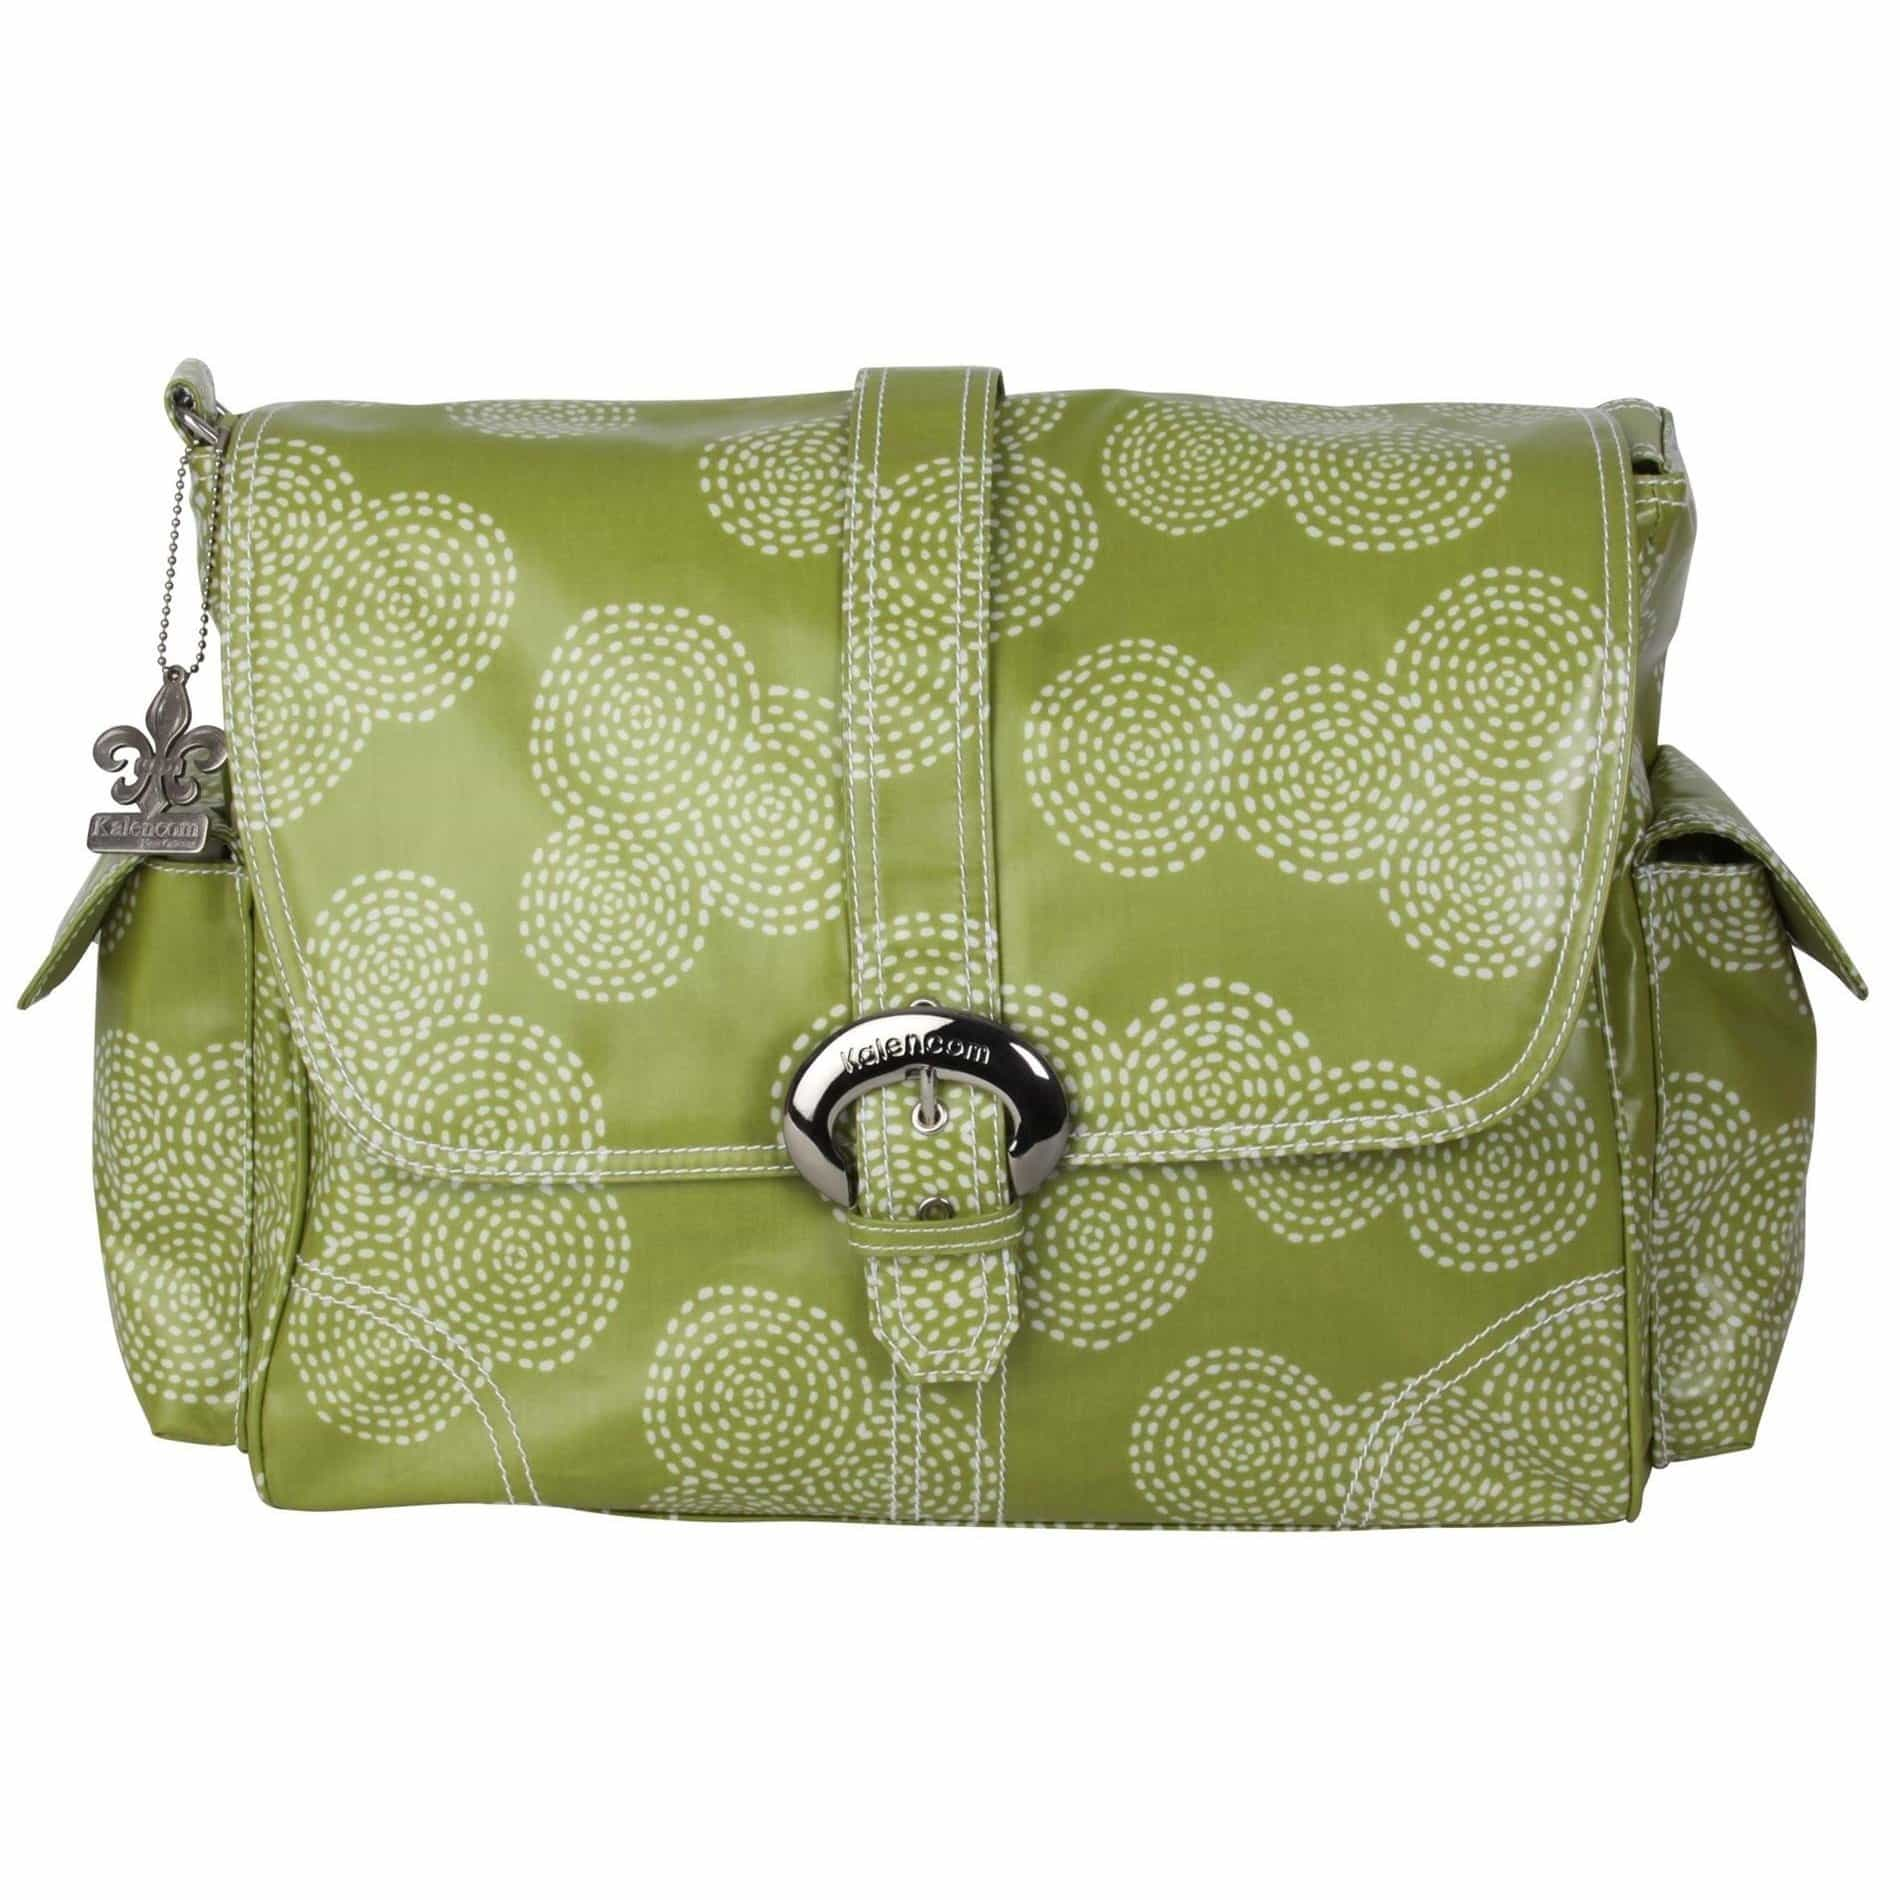 Stitches - Olive Matte Coated Buckle Diaper Bag | Style 2960 - Kalencom-Diaper Bags-Default-Jack and Jill Boutique